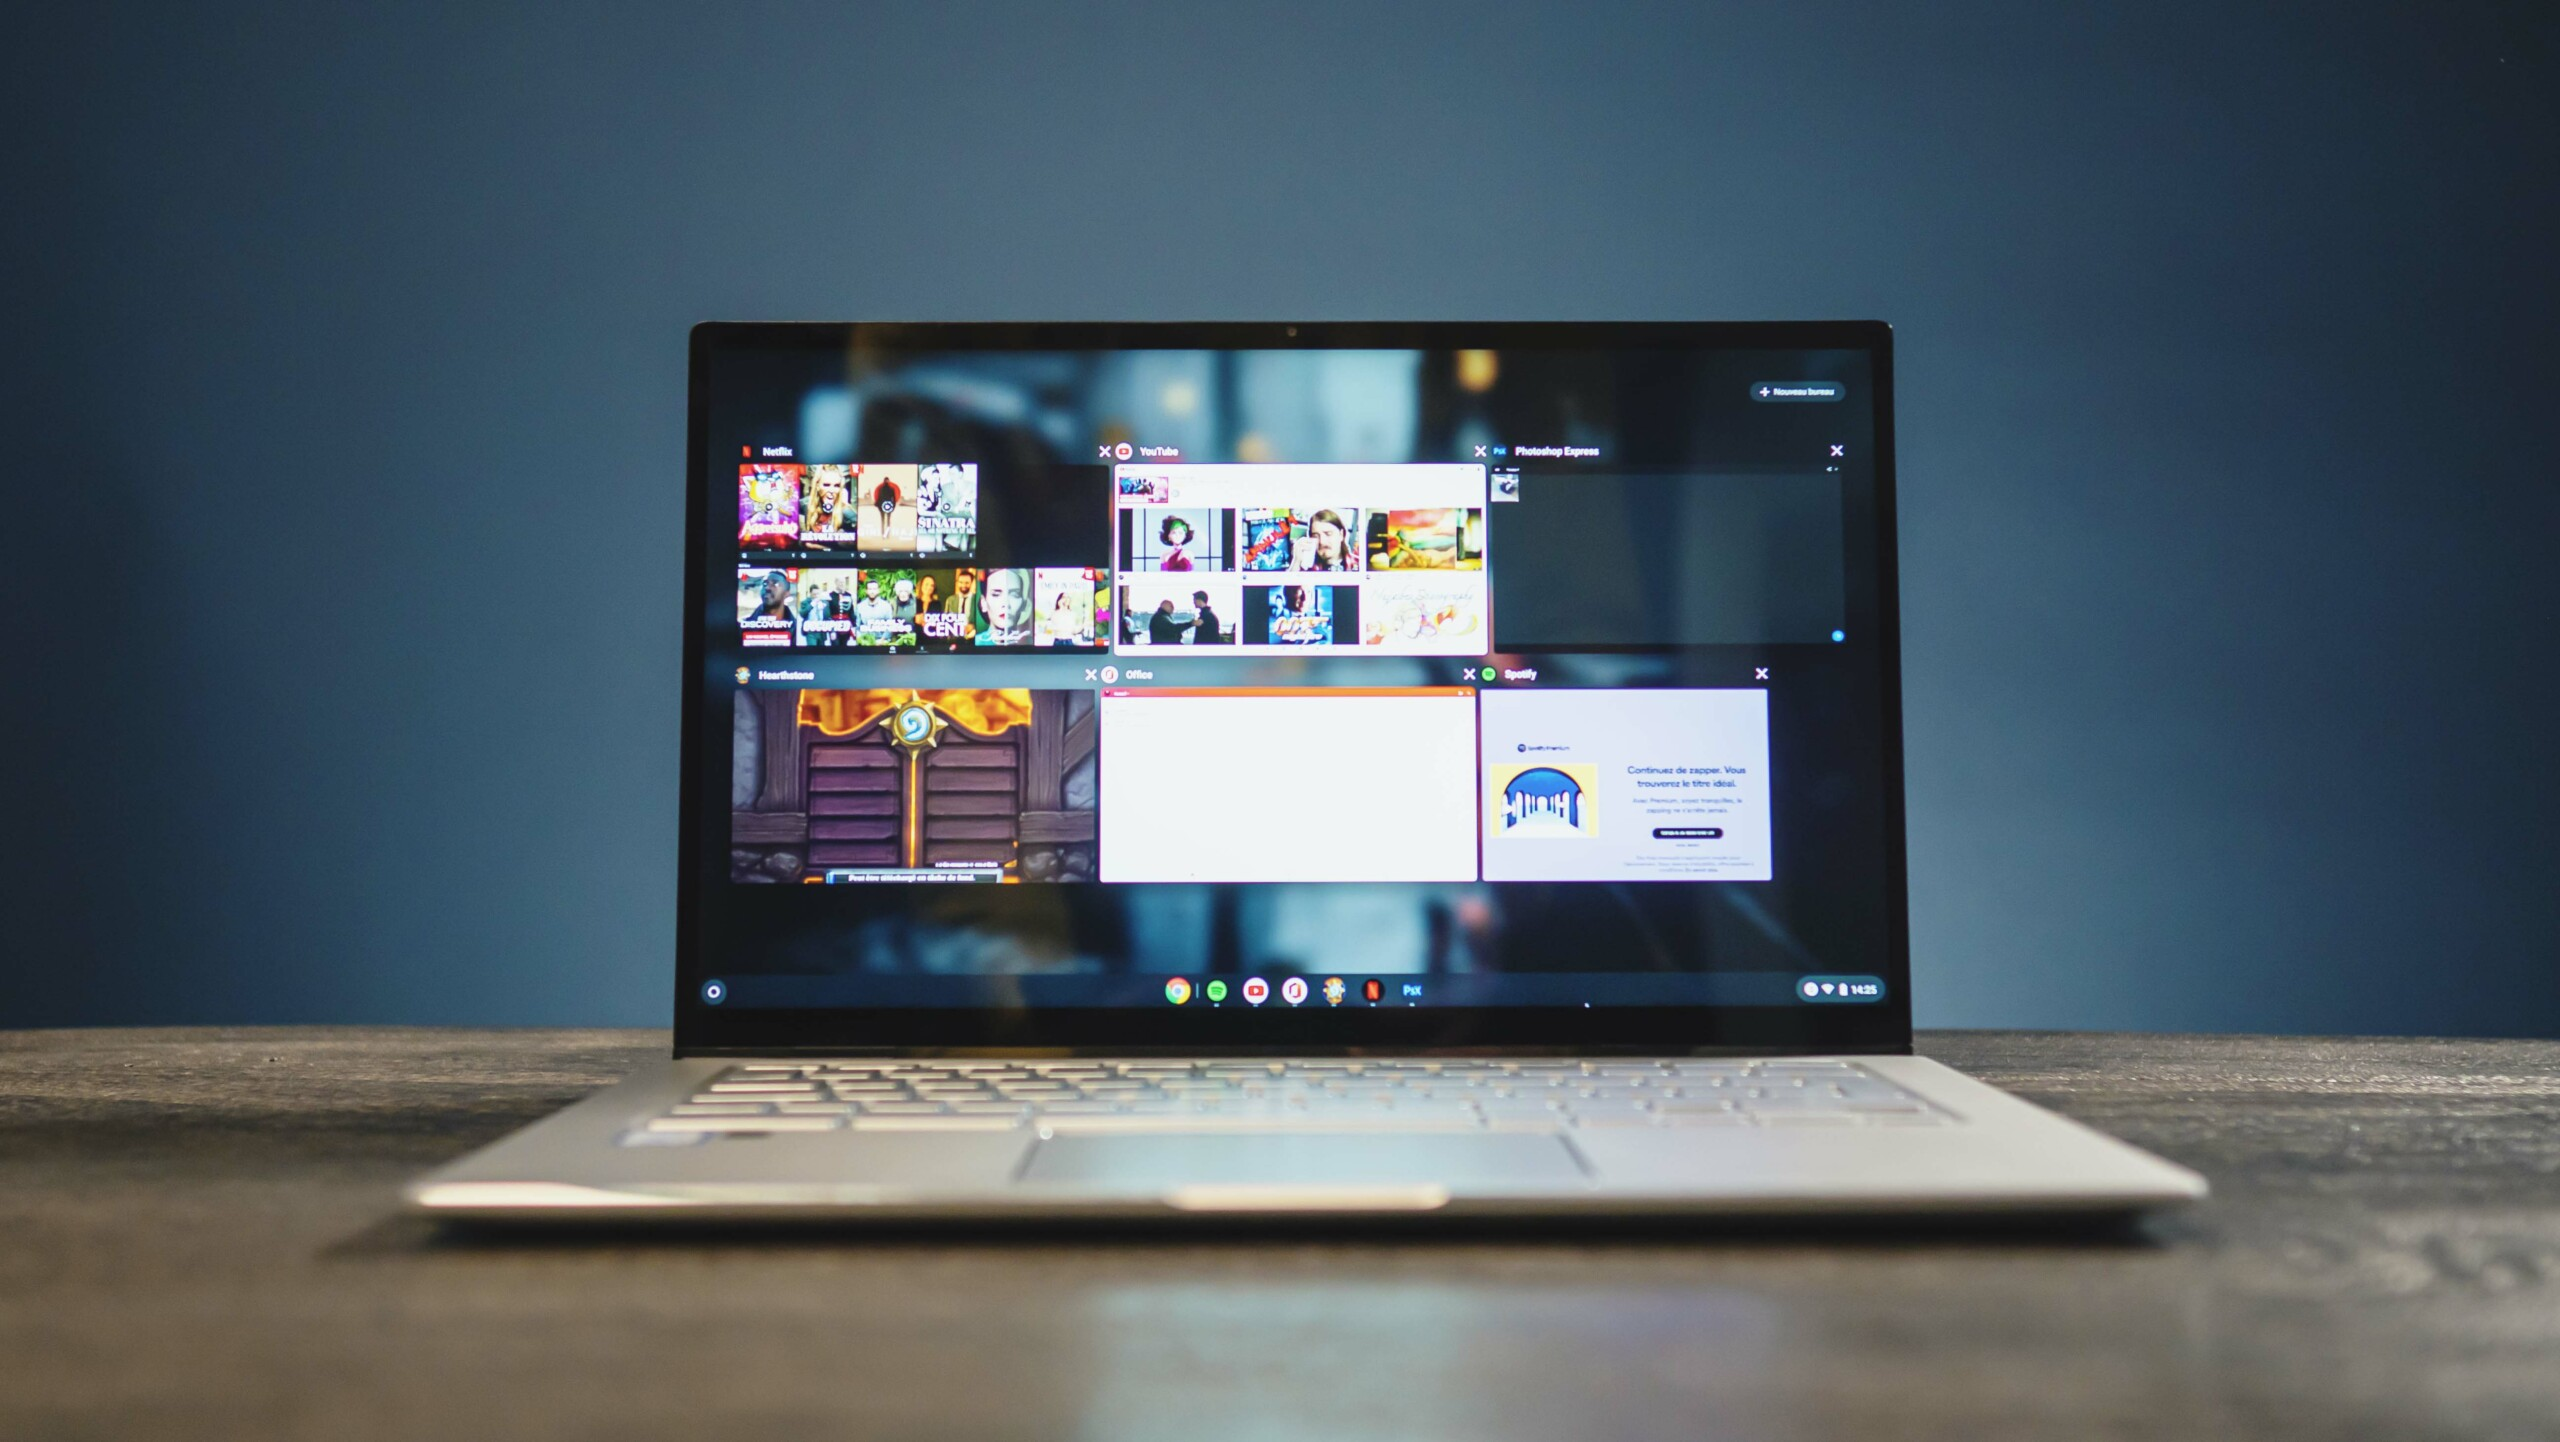 Chrome OS doesn't weigh a lot, leaving room for all your favorite apps.